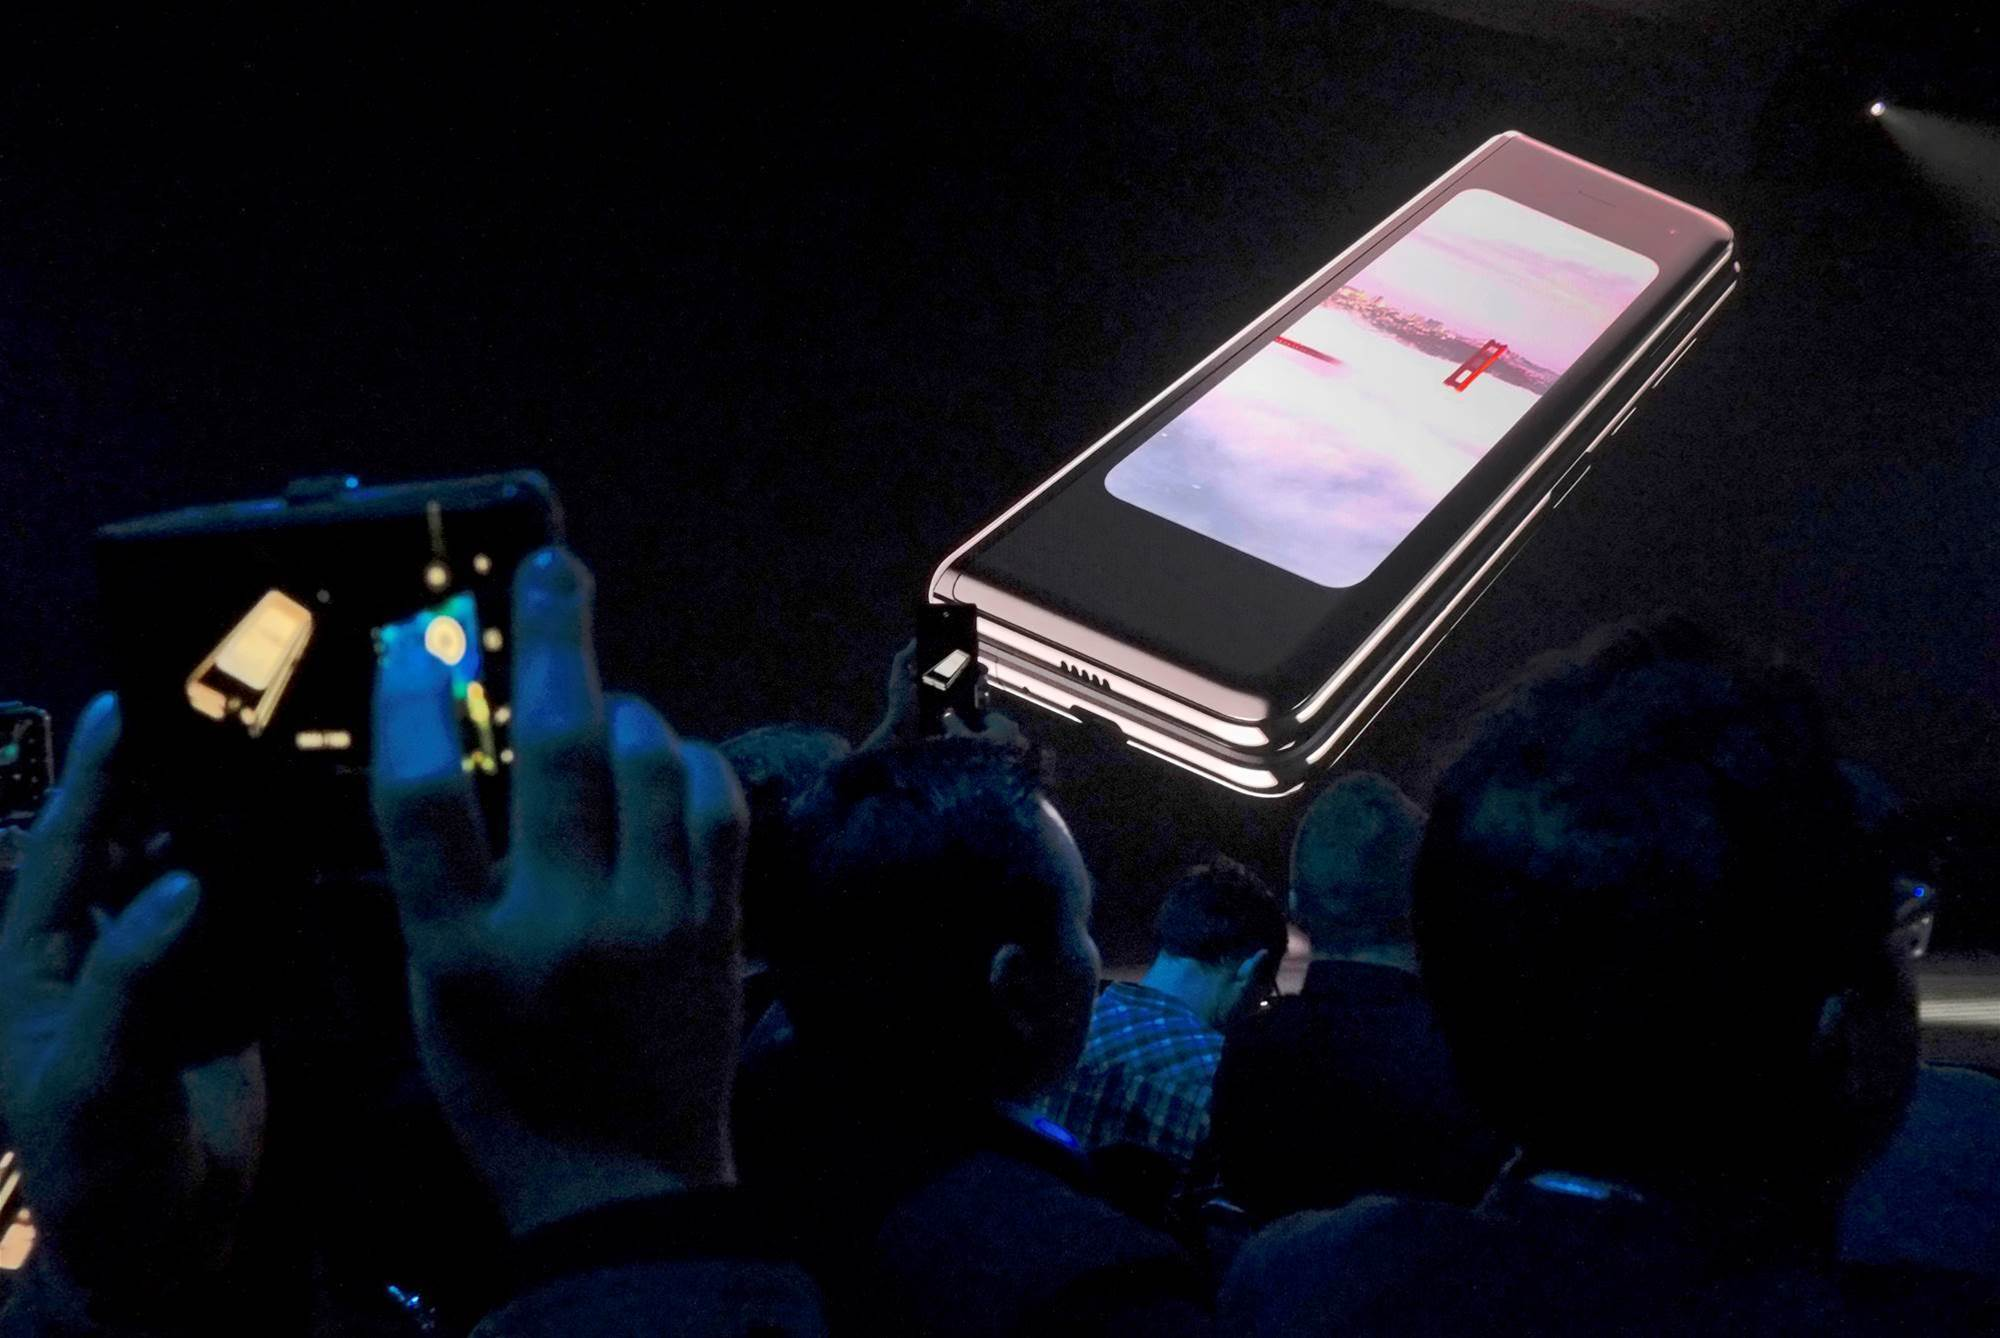 Samsung Electronics says no anticipated shipping date yet for Galaxy Fold